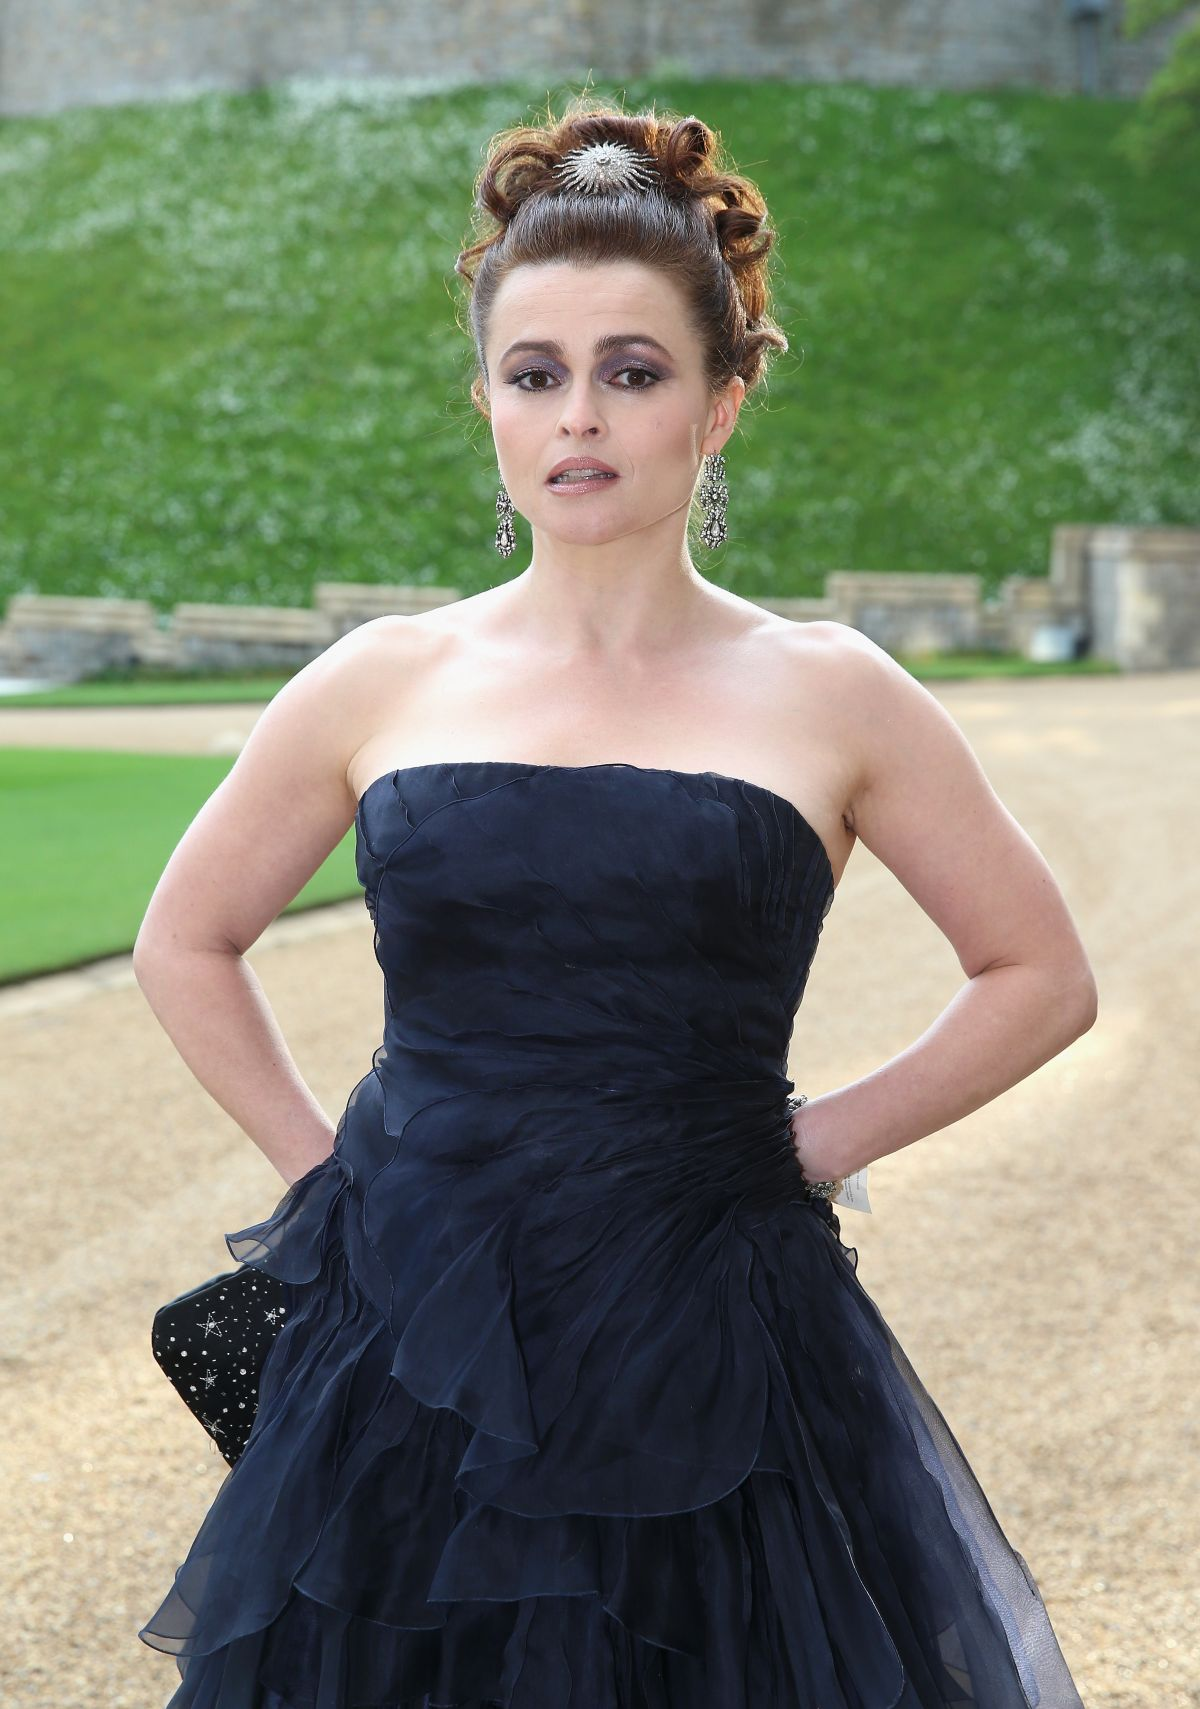 HELENA BONHAM CARTER Celebrating the Work of the Royal Marsden Hosted ...